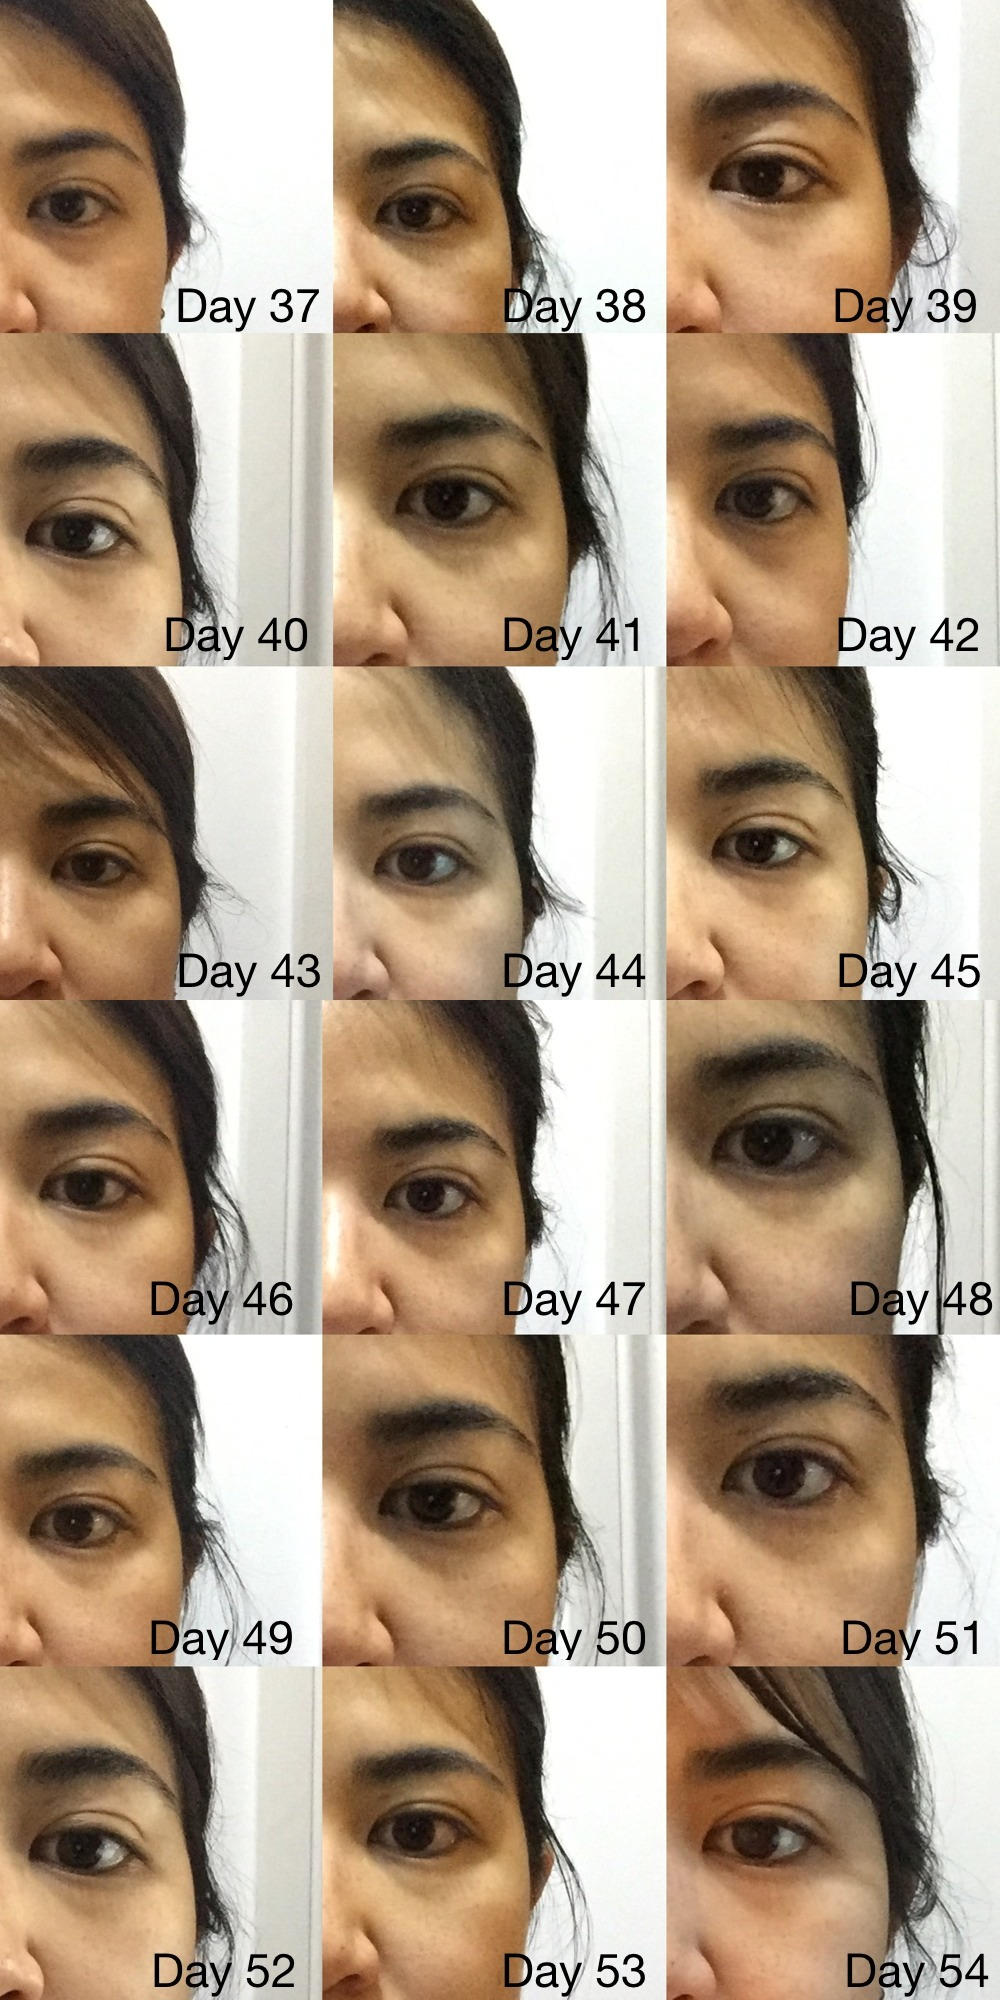 Eyecream Test 37 - 54